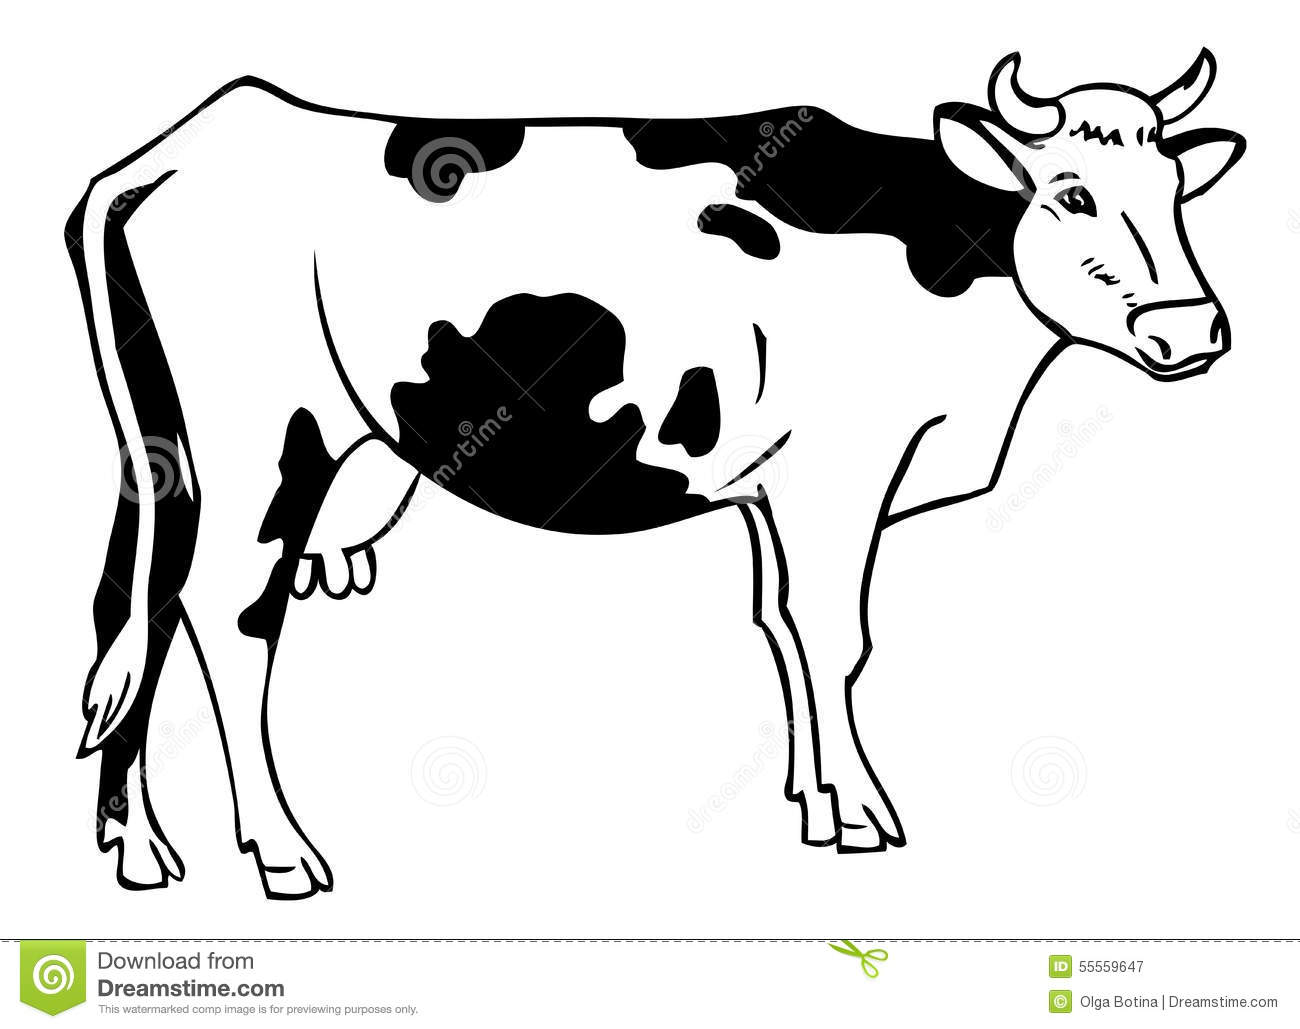 Dessin d 39 une vache illustration de vecteur illustration - Dessin d une vache ...